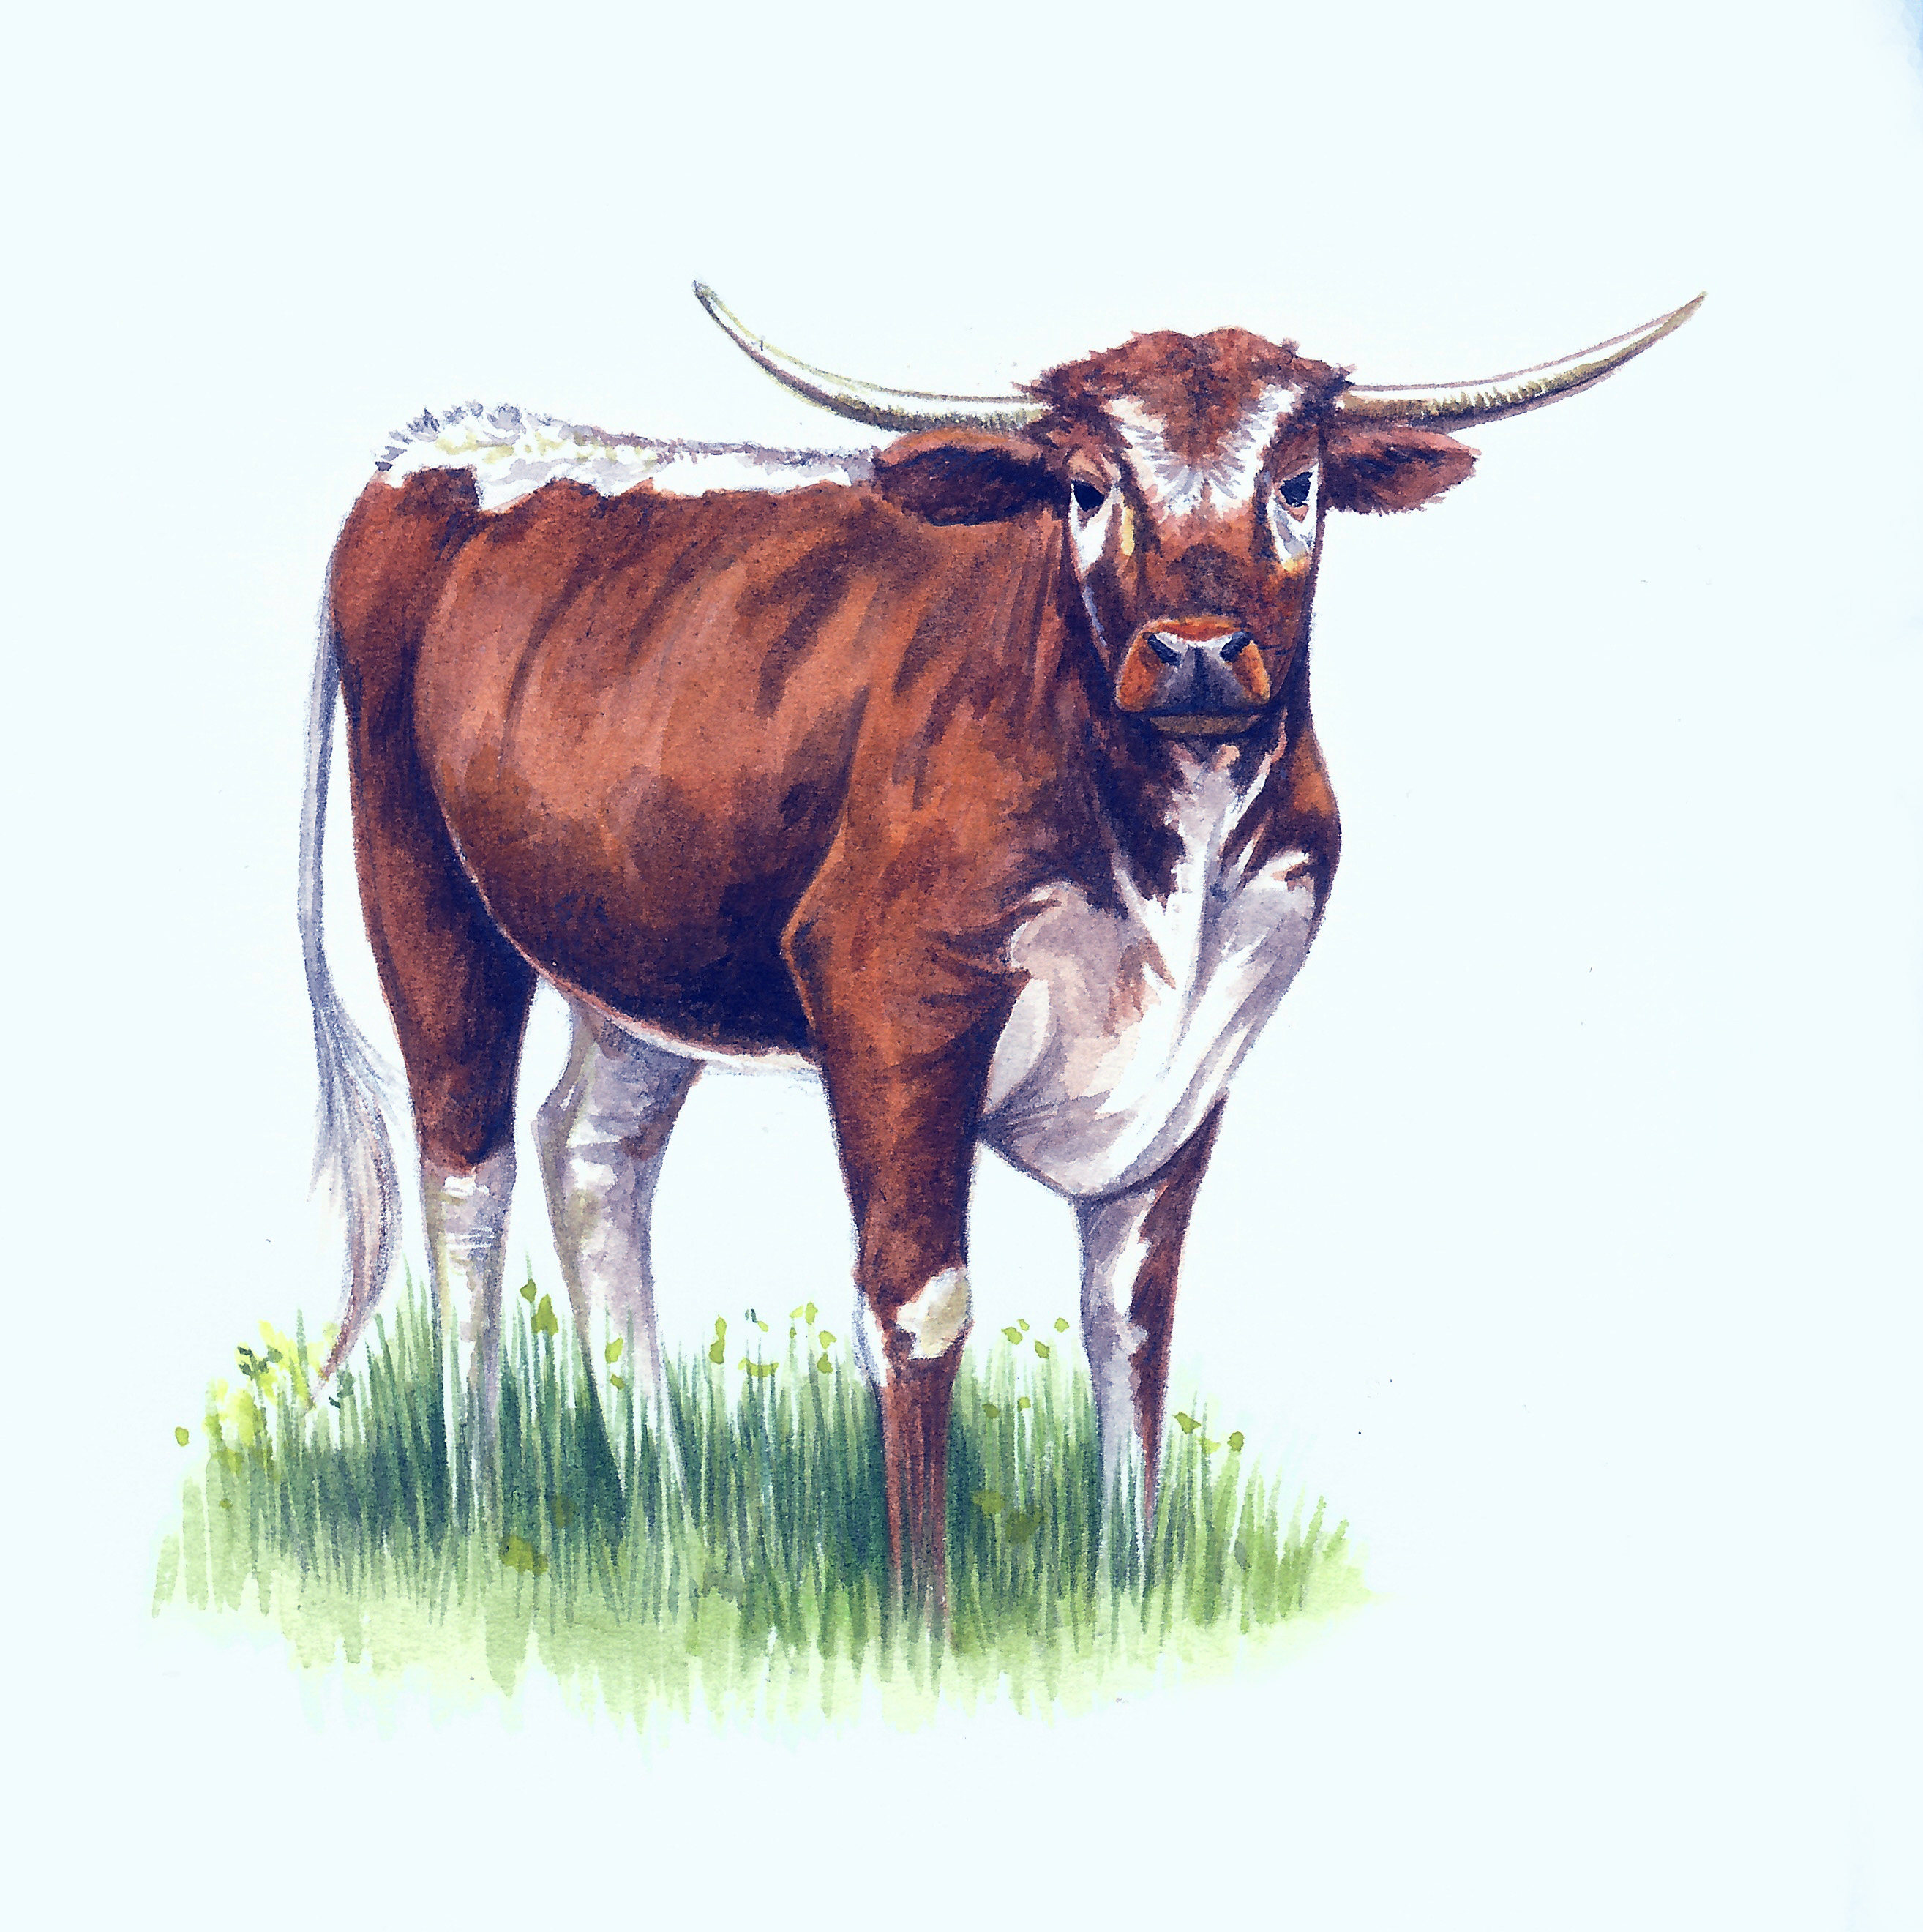 Longhorn+Cattle+Artwork